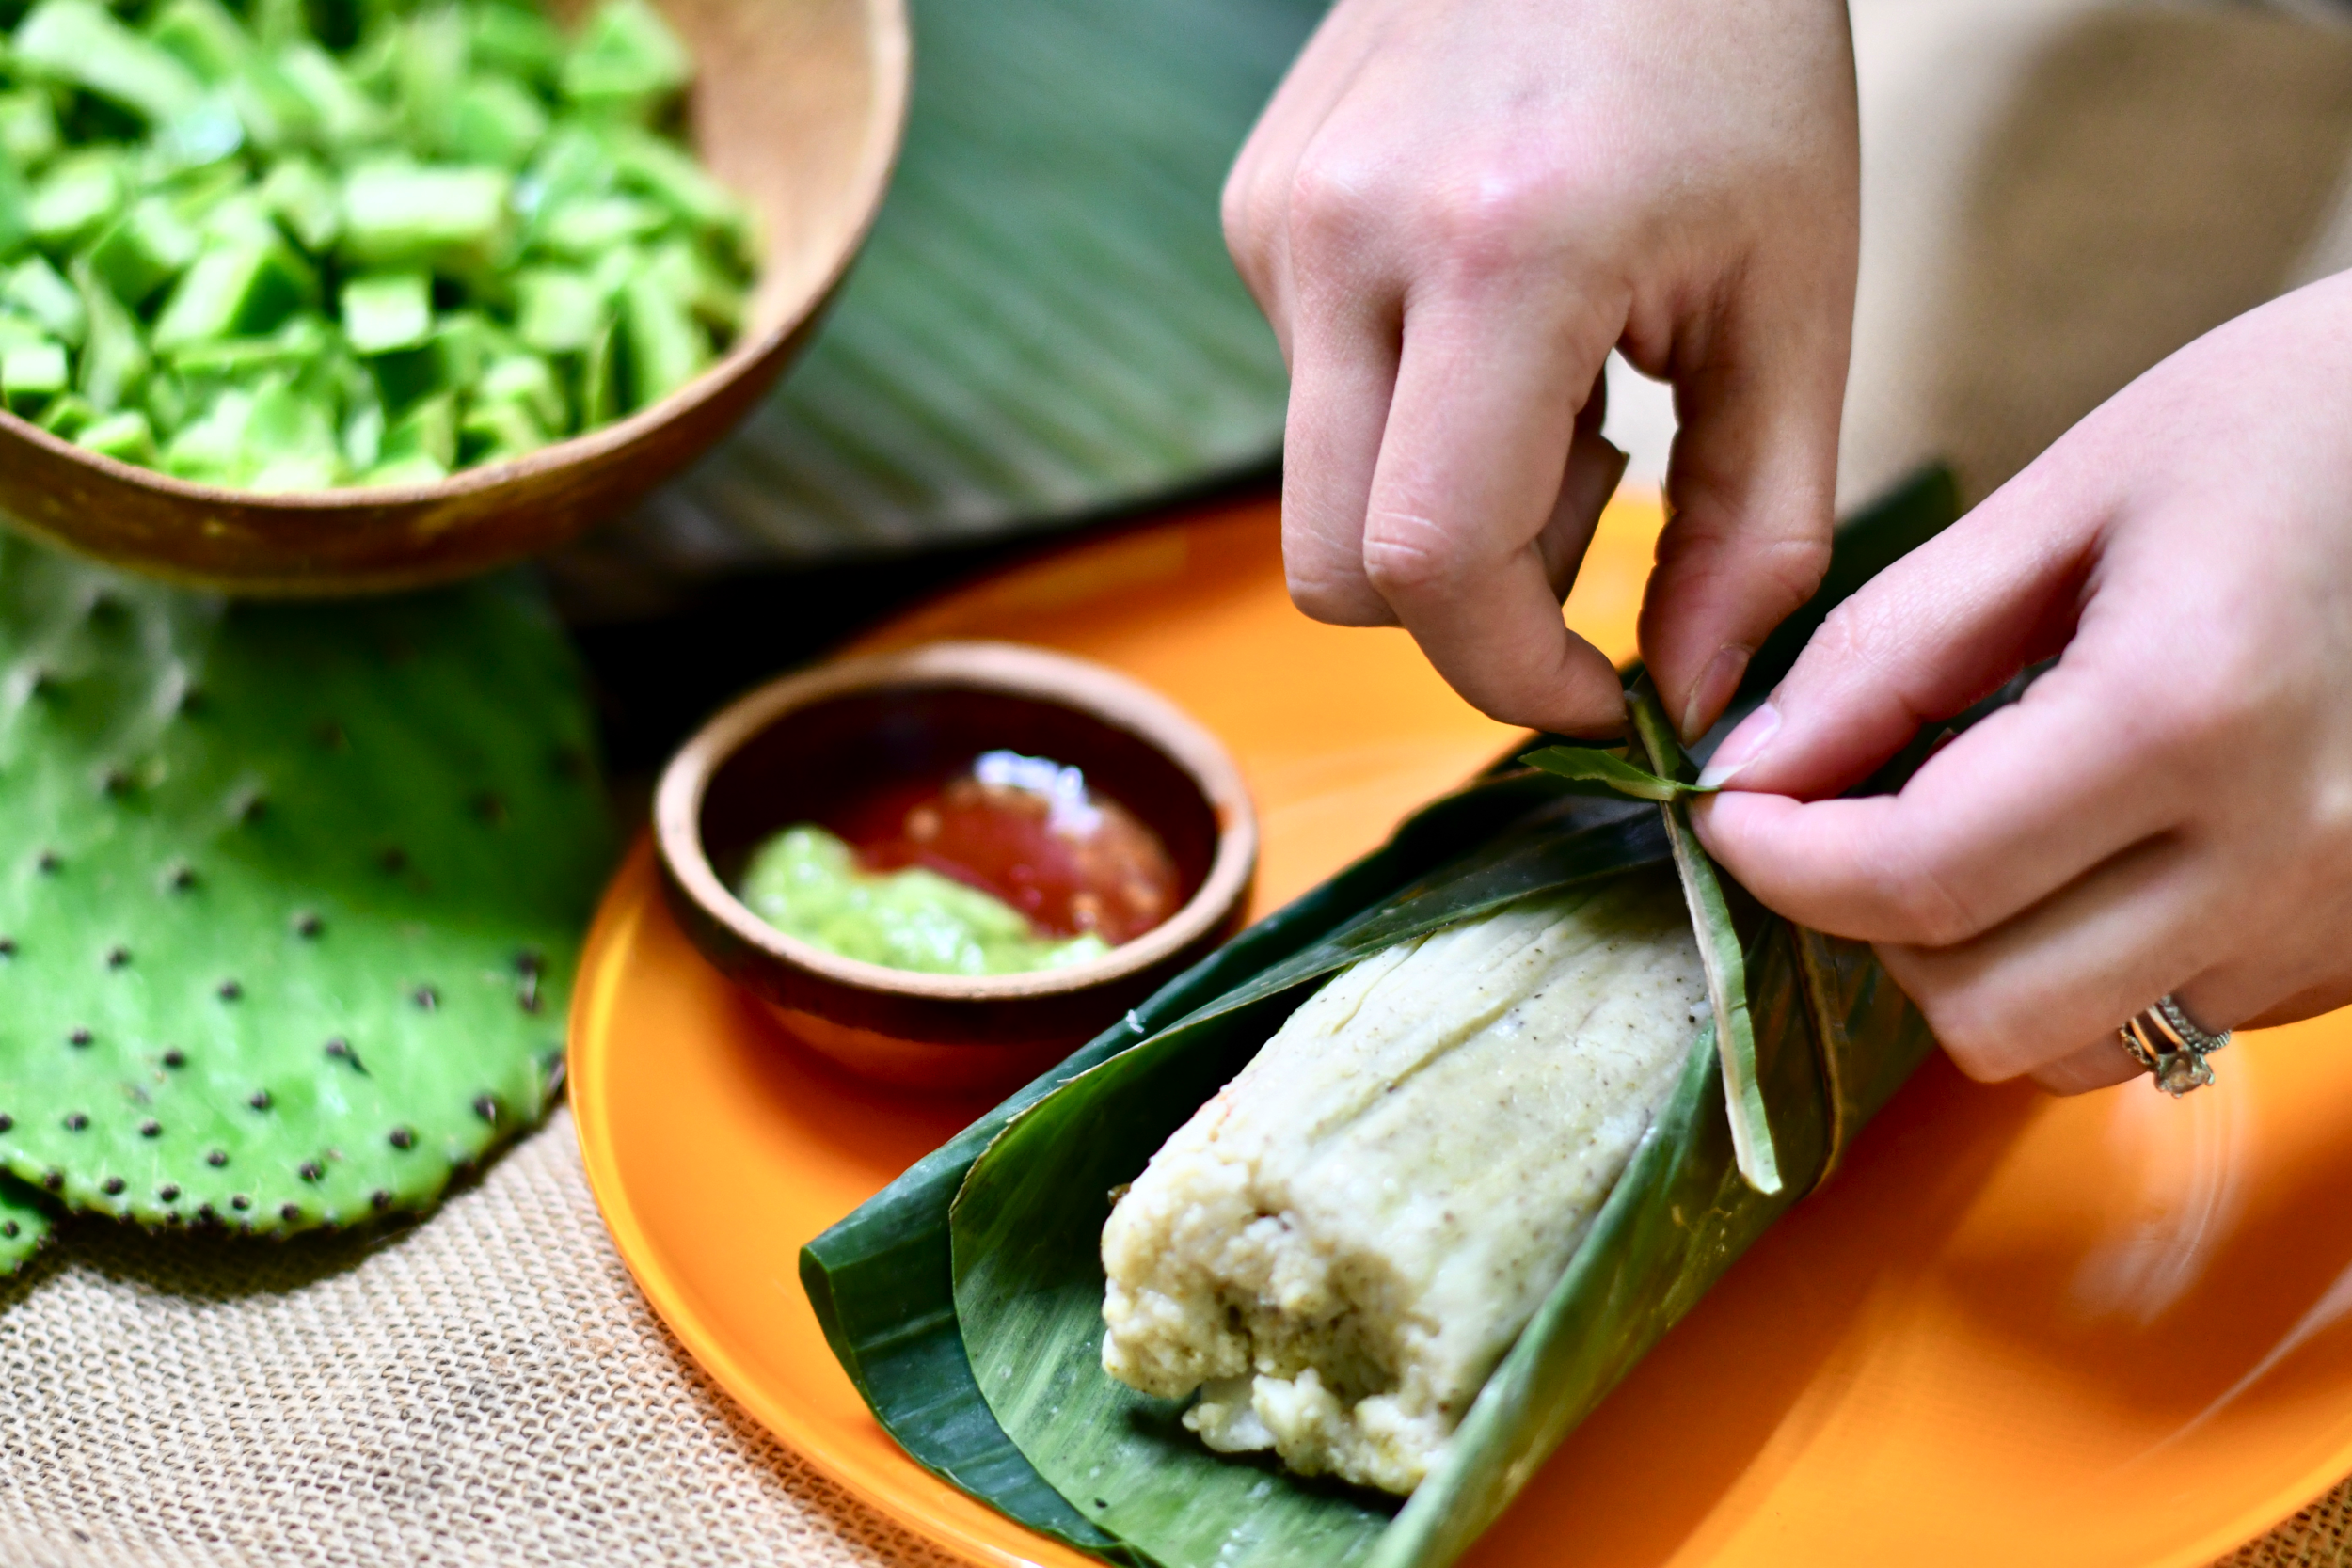 Cooking Class: Making Tamales